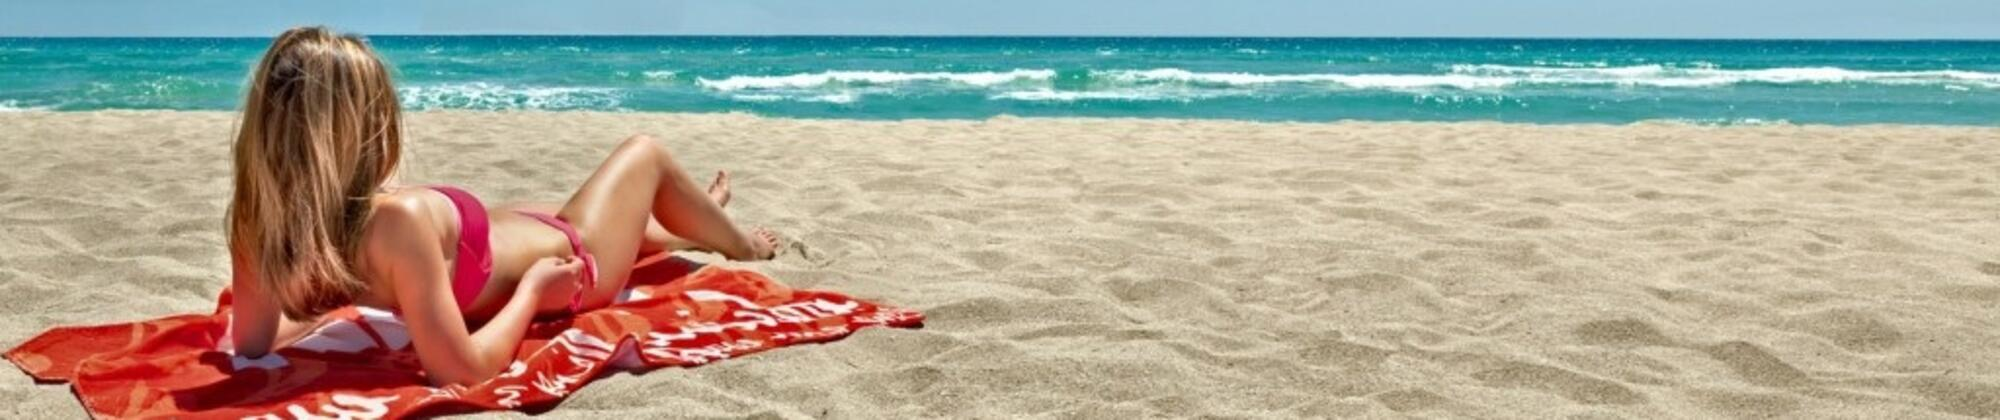 Special offer: start your summer under the sun of Salento